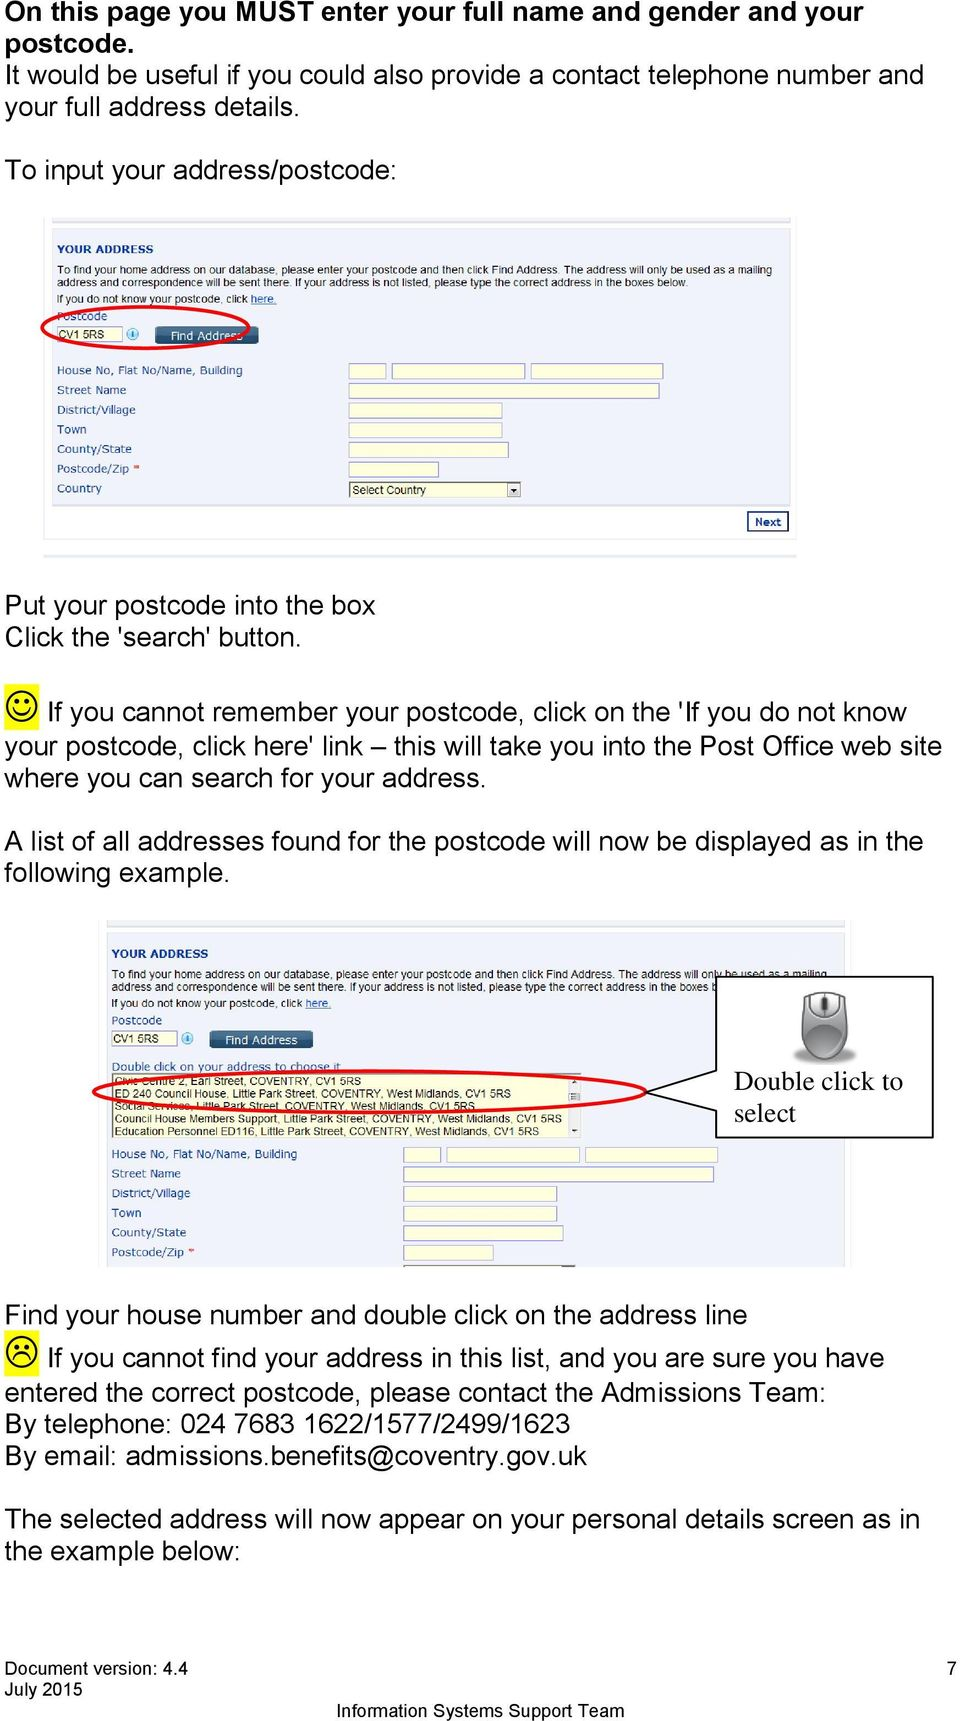 If you cannot remember your postcode, click on the 'If you do not know your postcode, click here' link this will take you into the Post Office web site where you can search for your address.